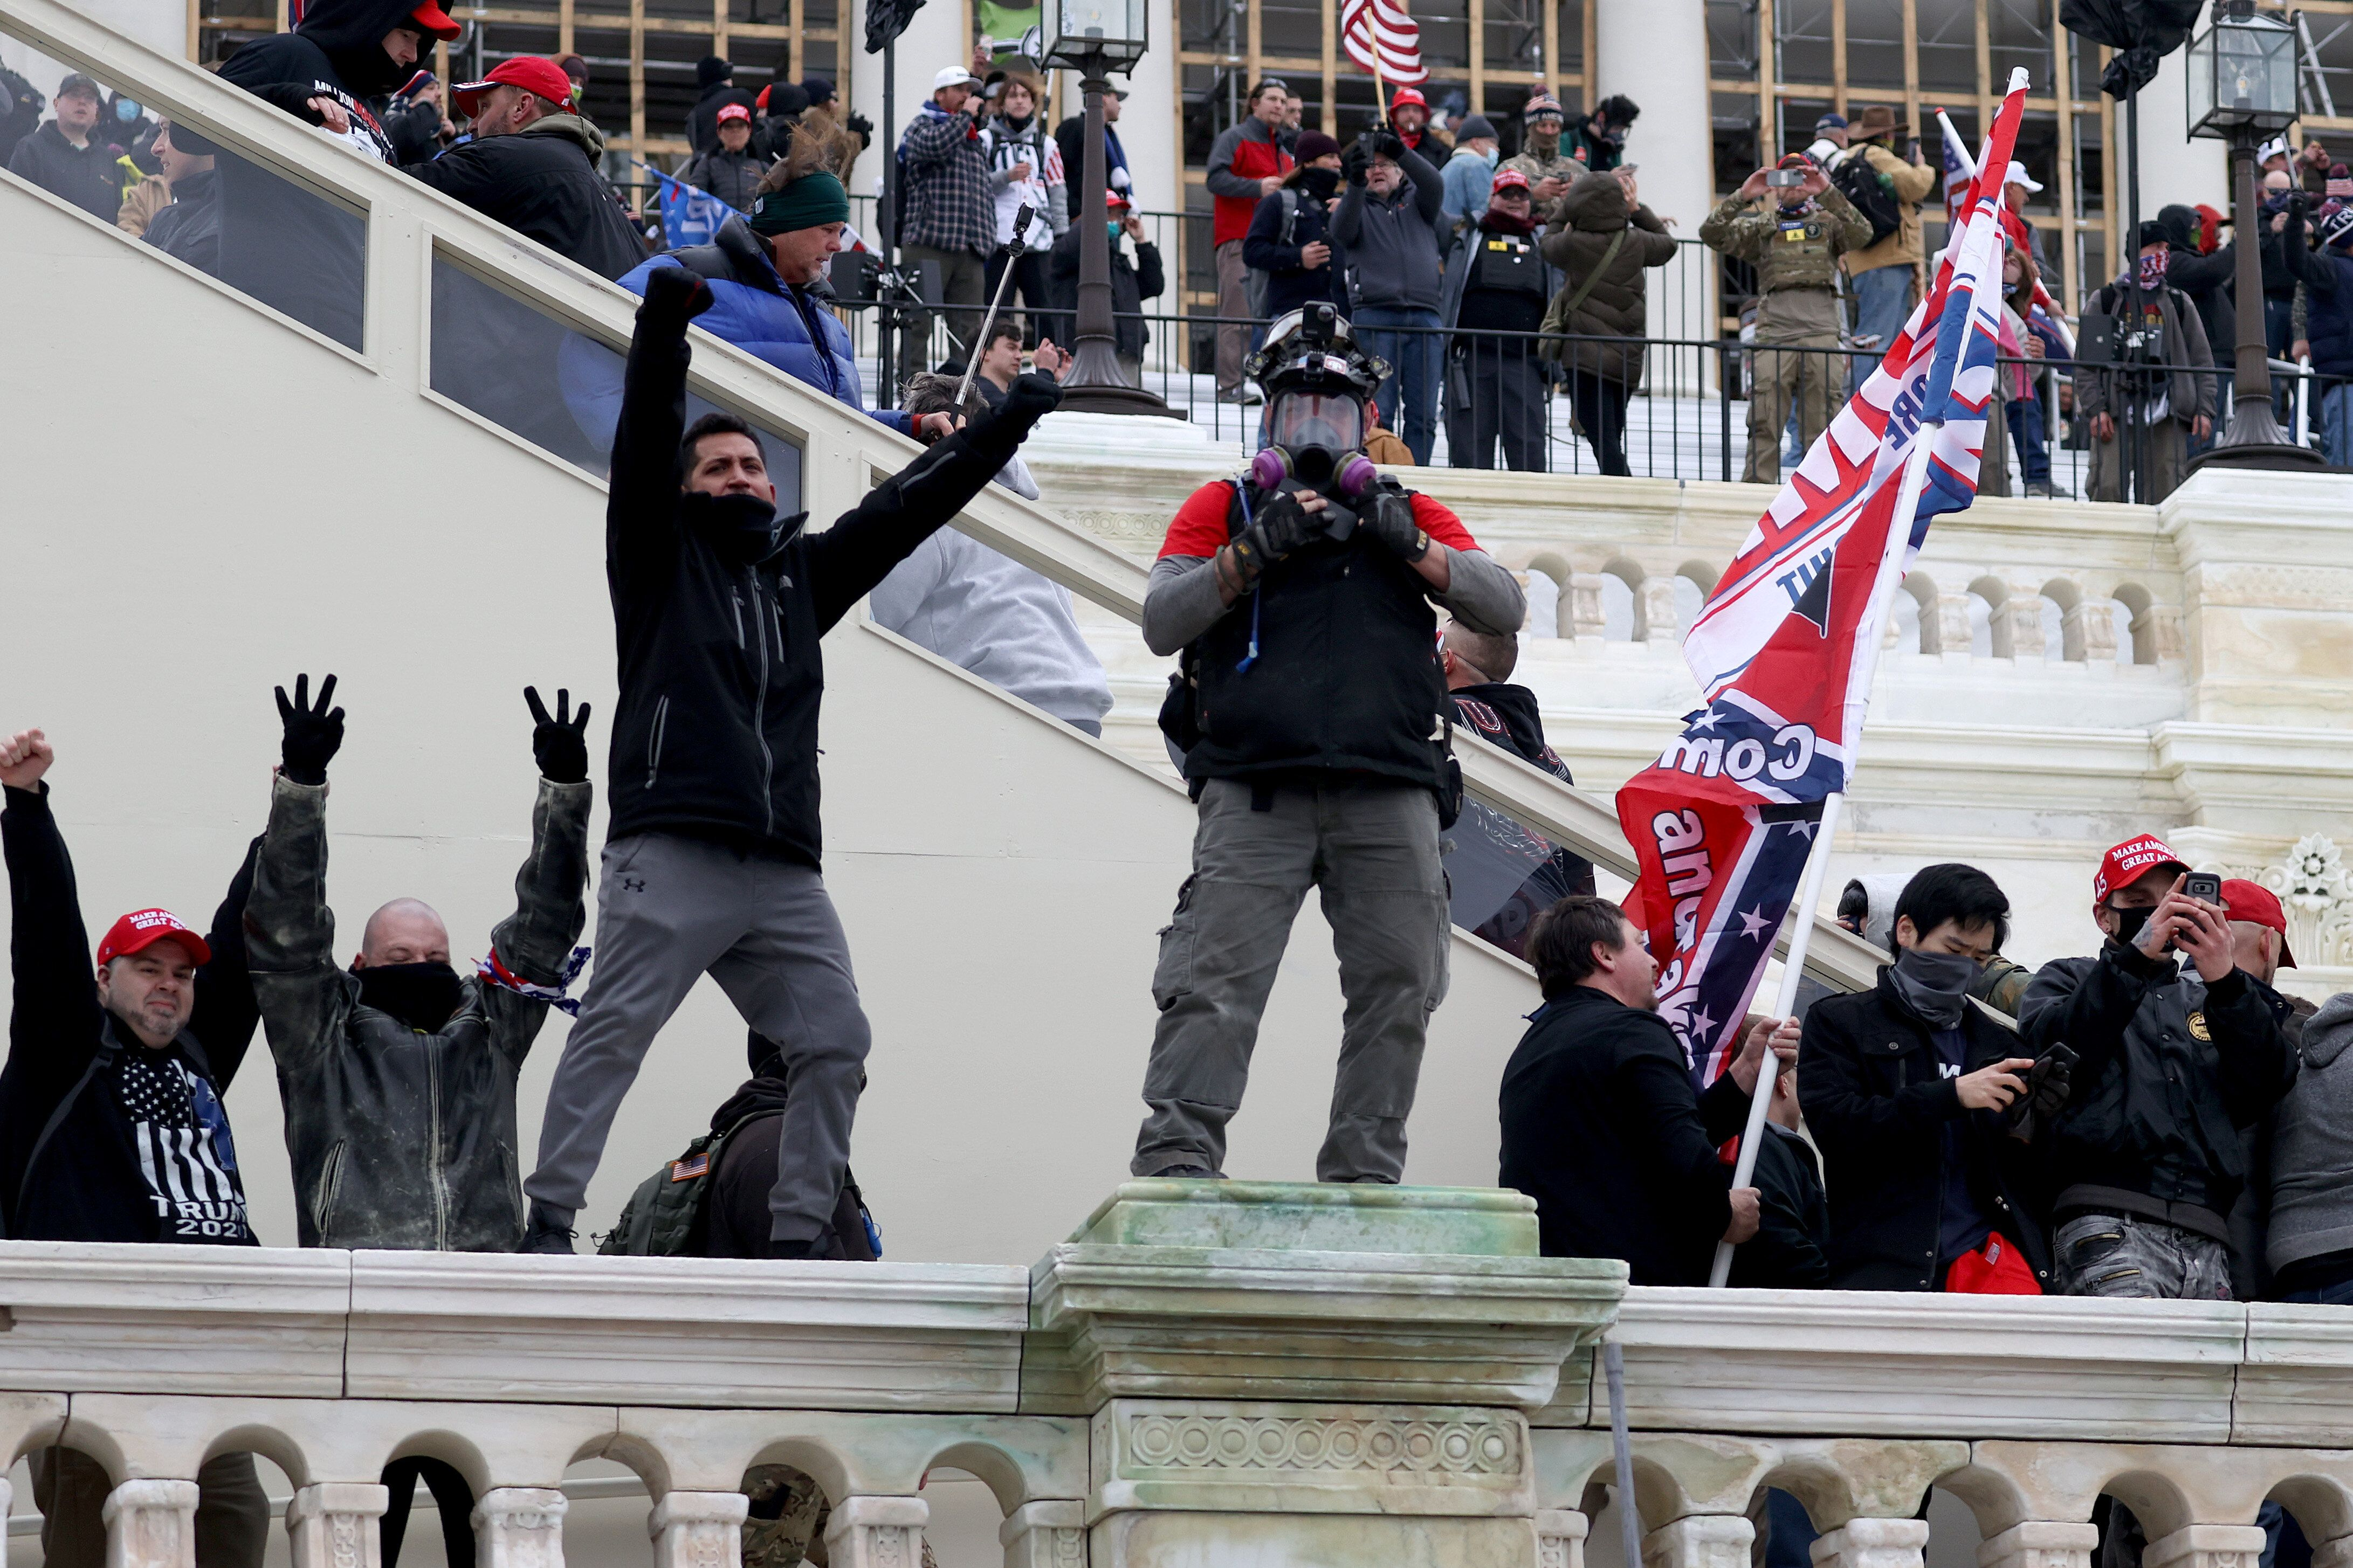 Russ Taylor (middle, in MAGA hat) on the west side of the Capitol during the attack. Another likely defendant, wearing a simi